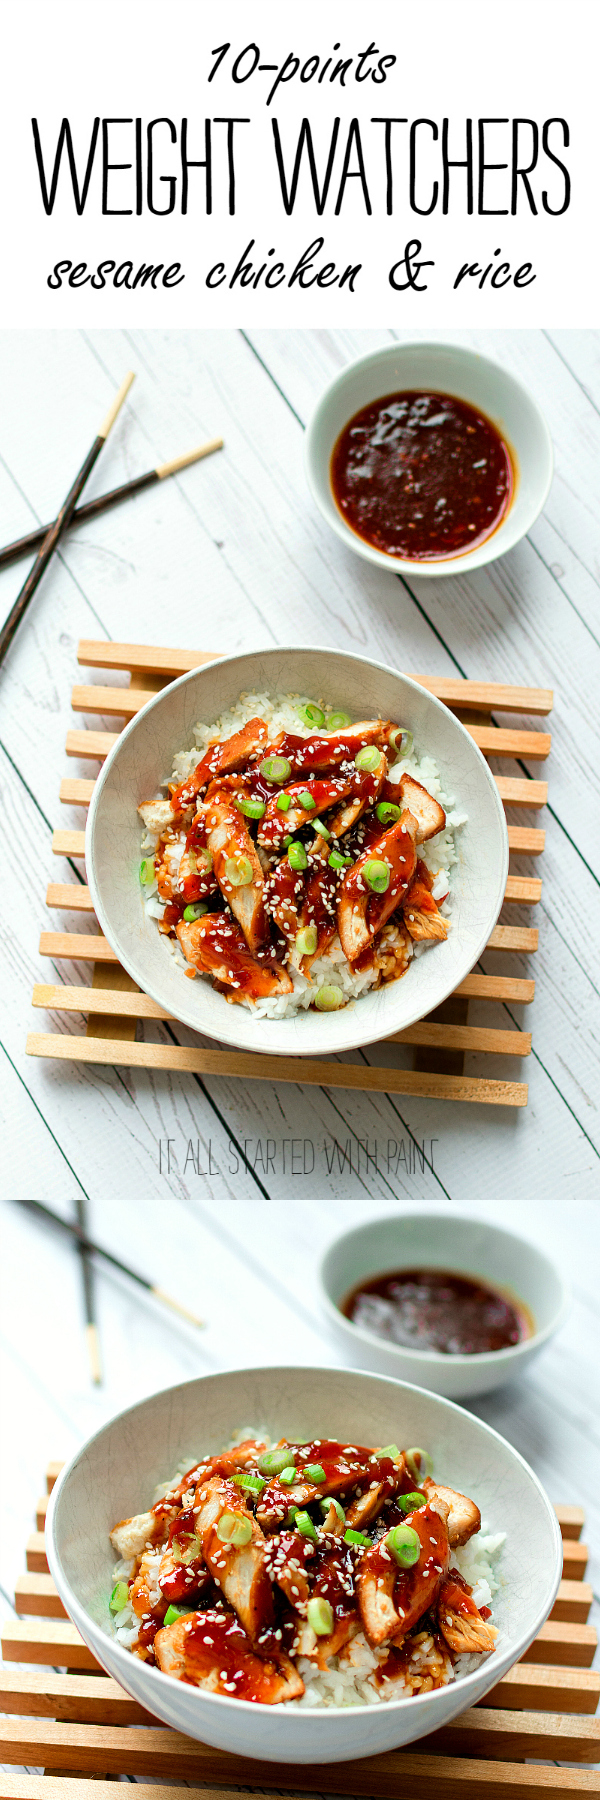 Sesame Chicken Recipe for Weight Watchers - Healthy and Easy